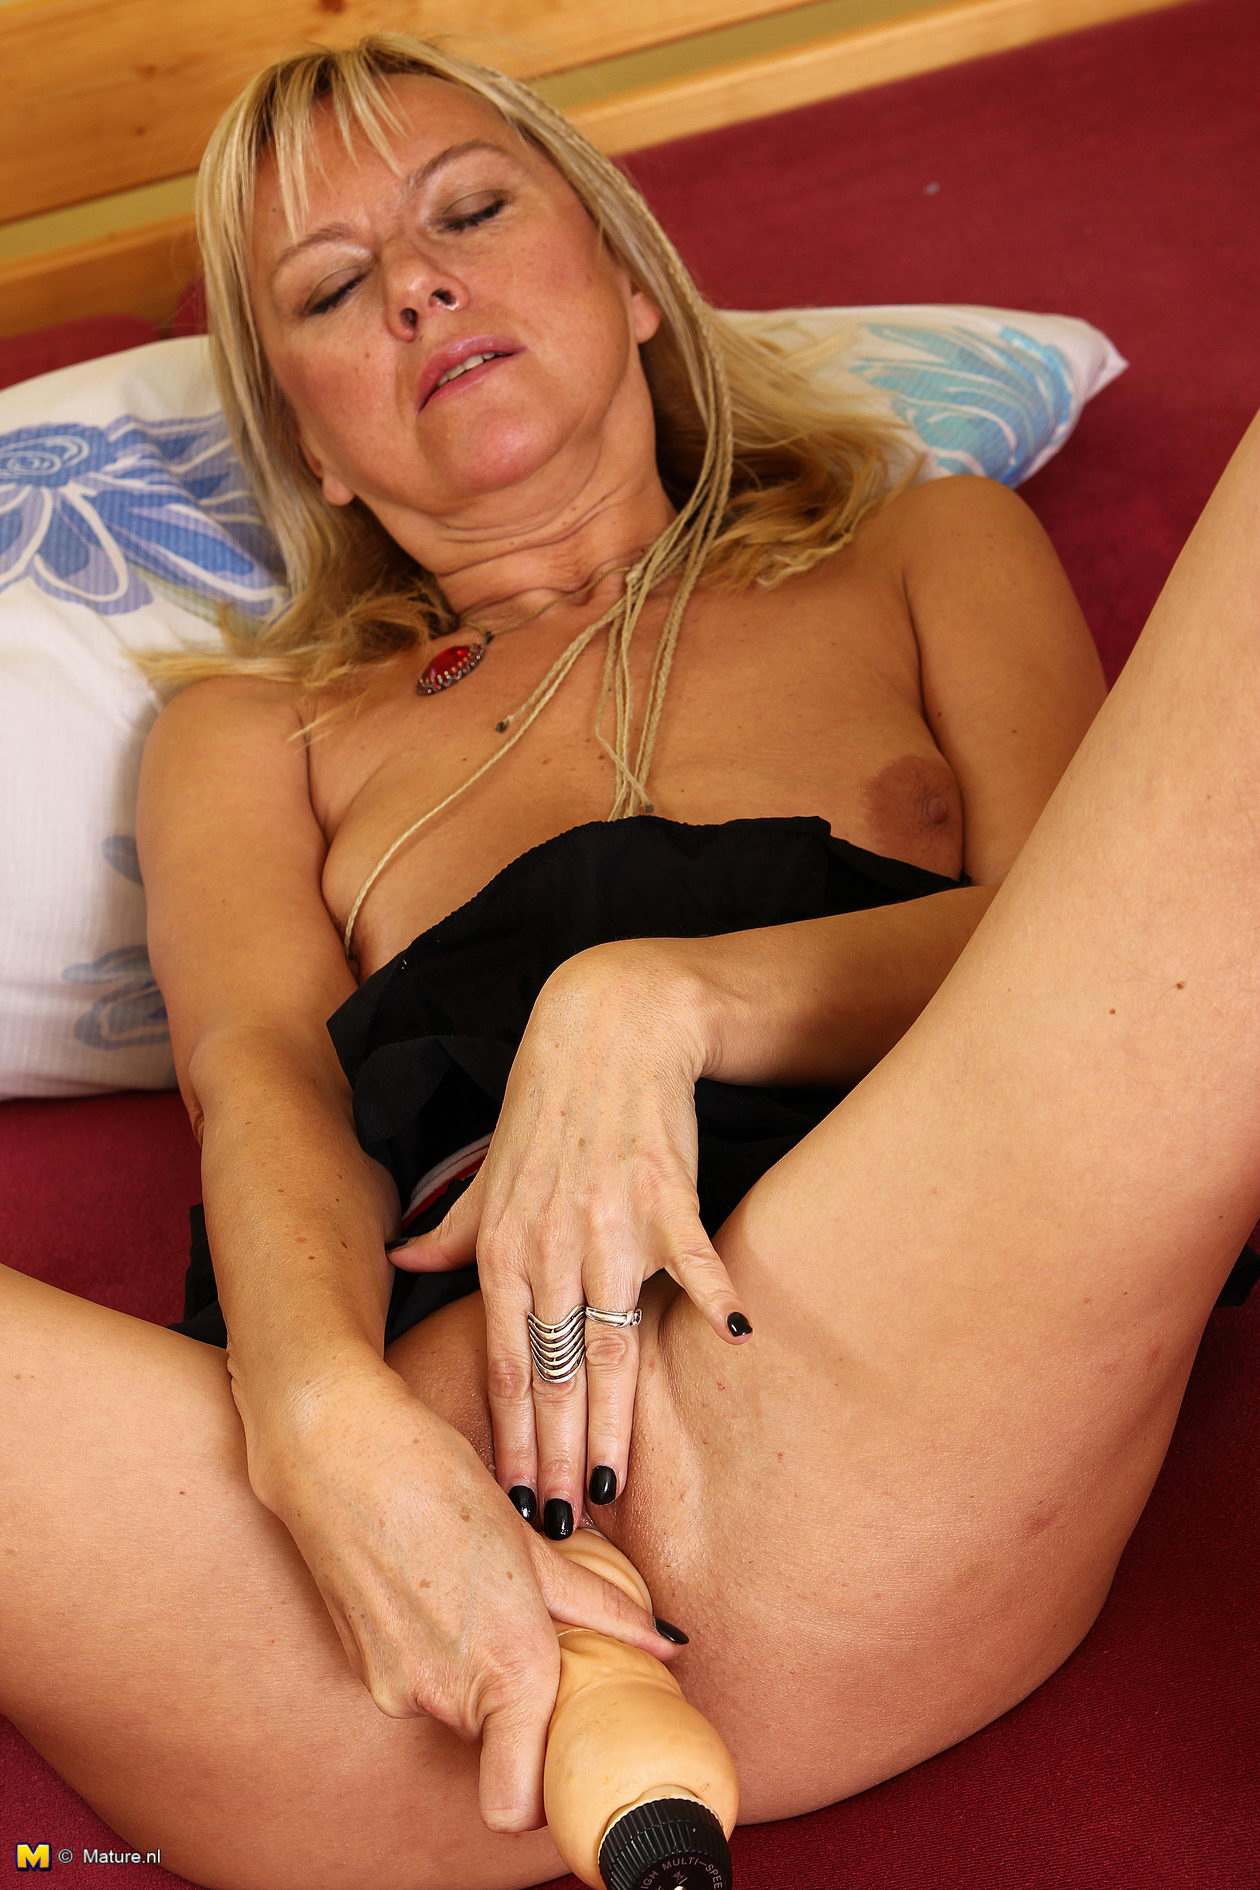 Hot milf caught me jerking